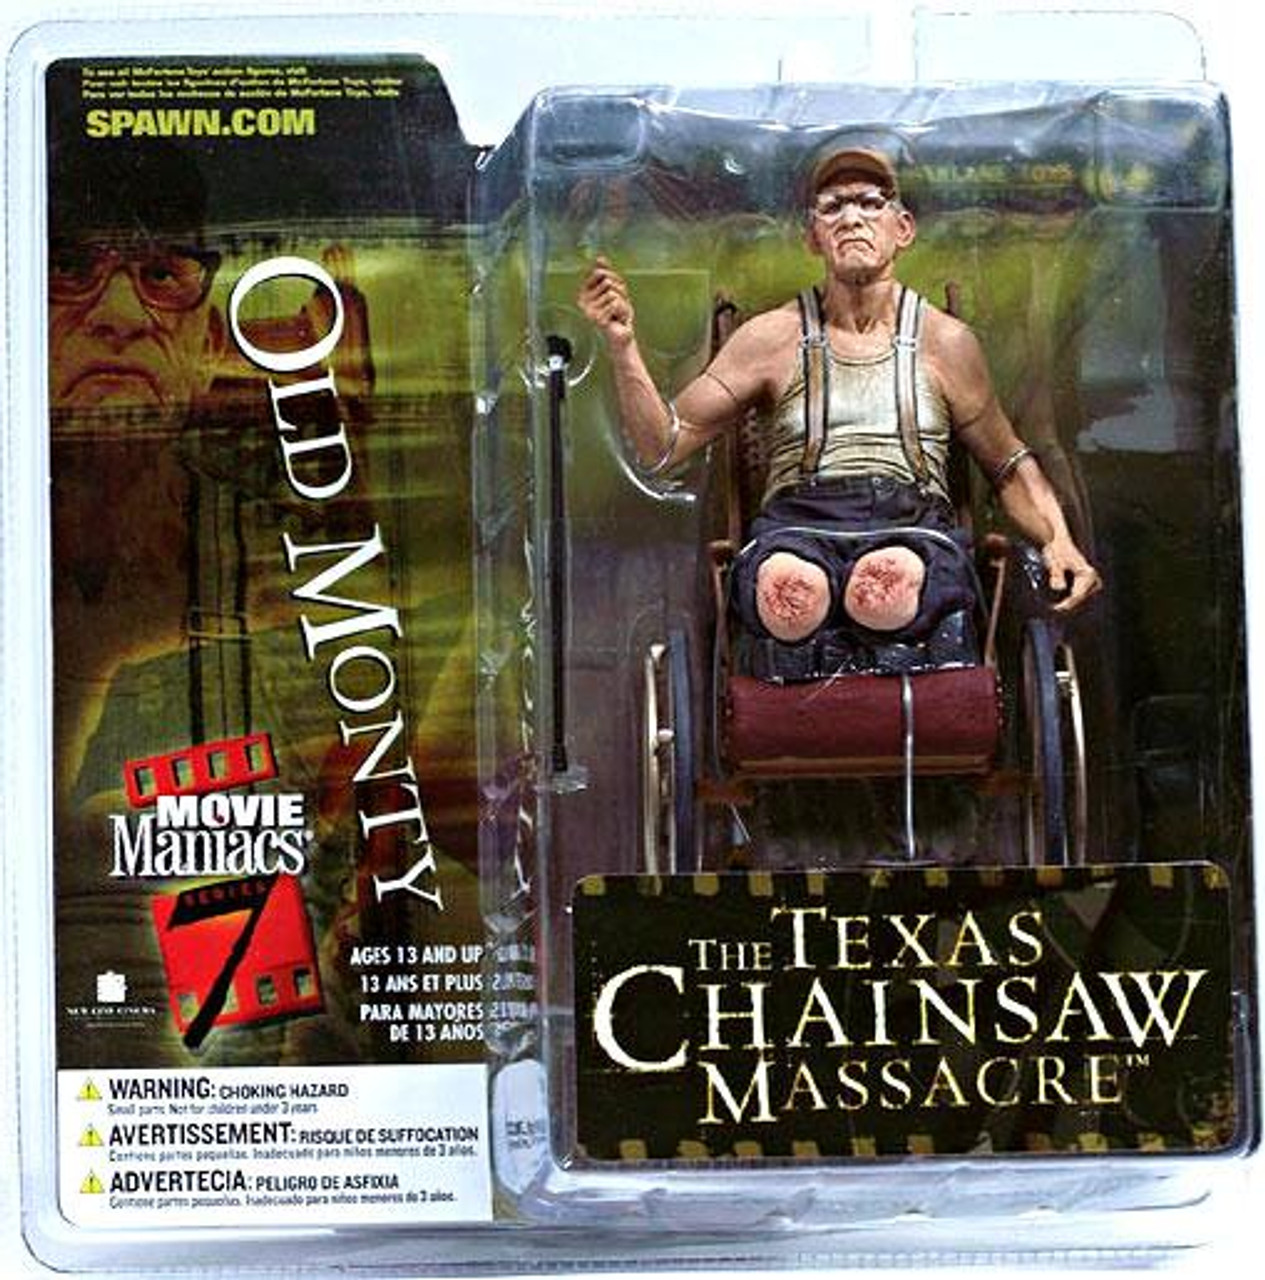 McFarlane Toys The Texas Chainsaw Massacre Movie Maniacs Series 7 Old Monty Action Figure